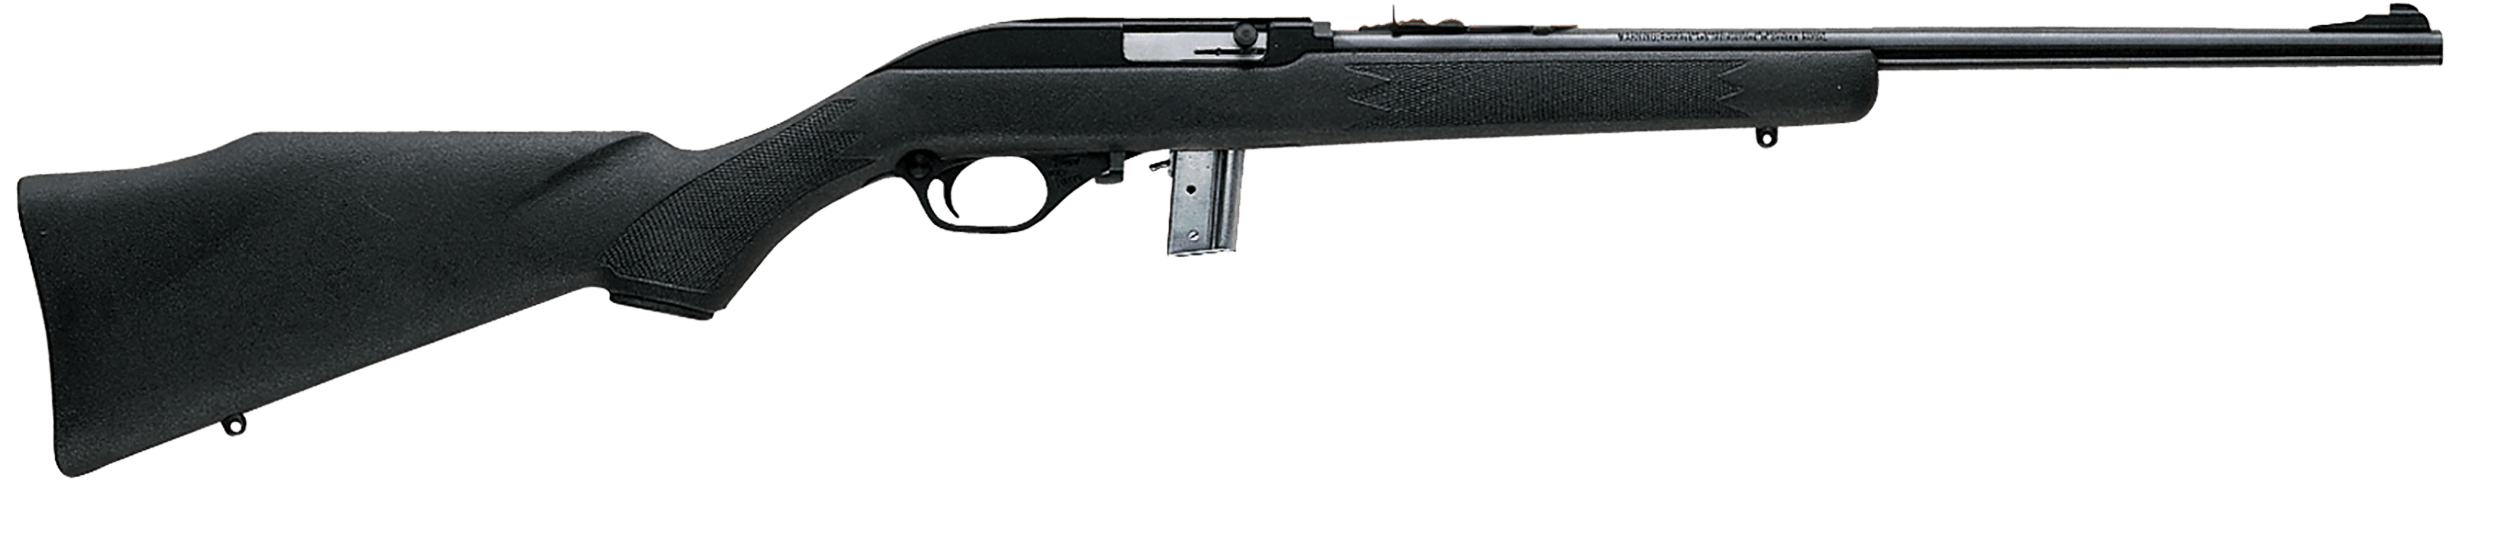 Clipart gun lever action rifle. Model marlin firearms microgroove